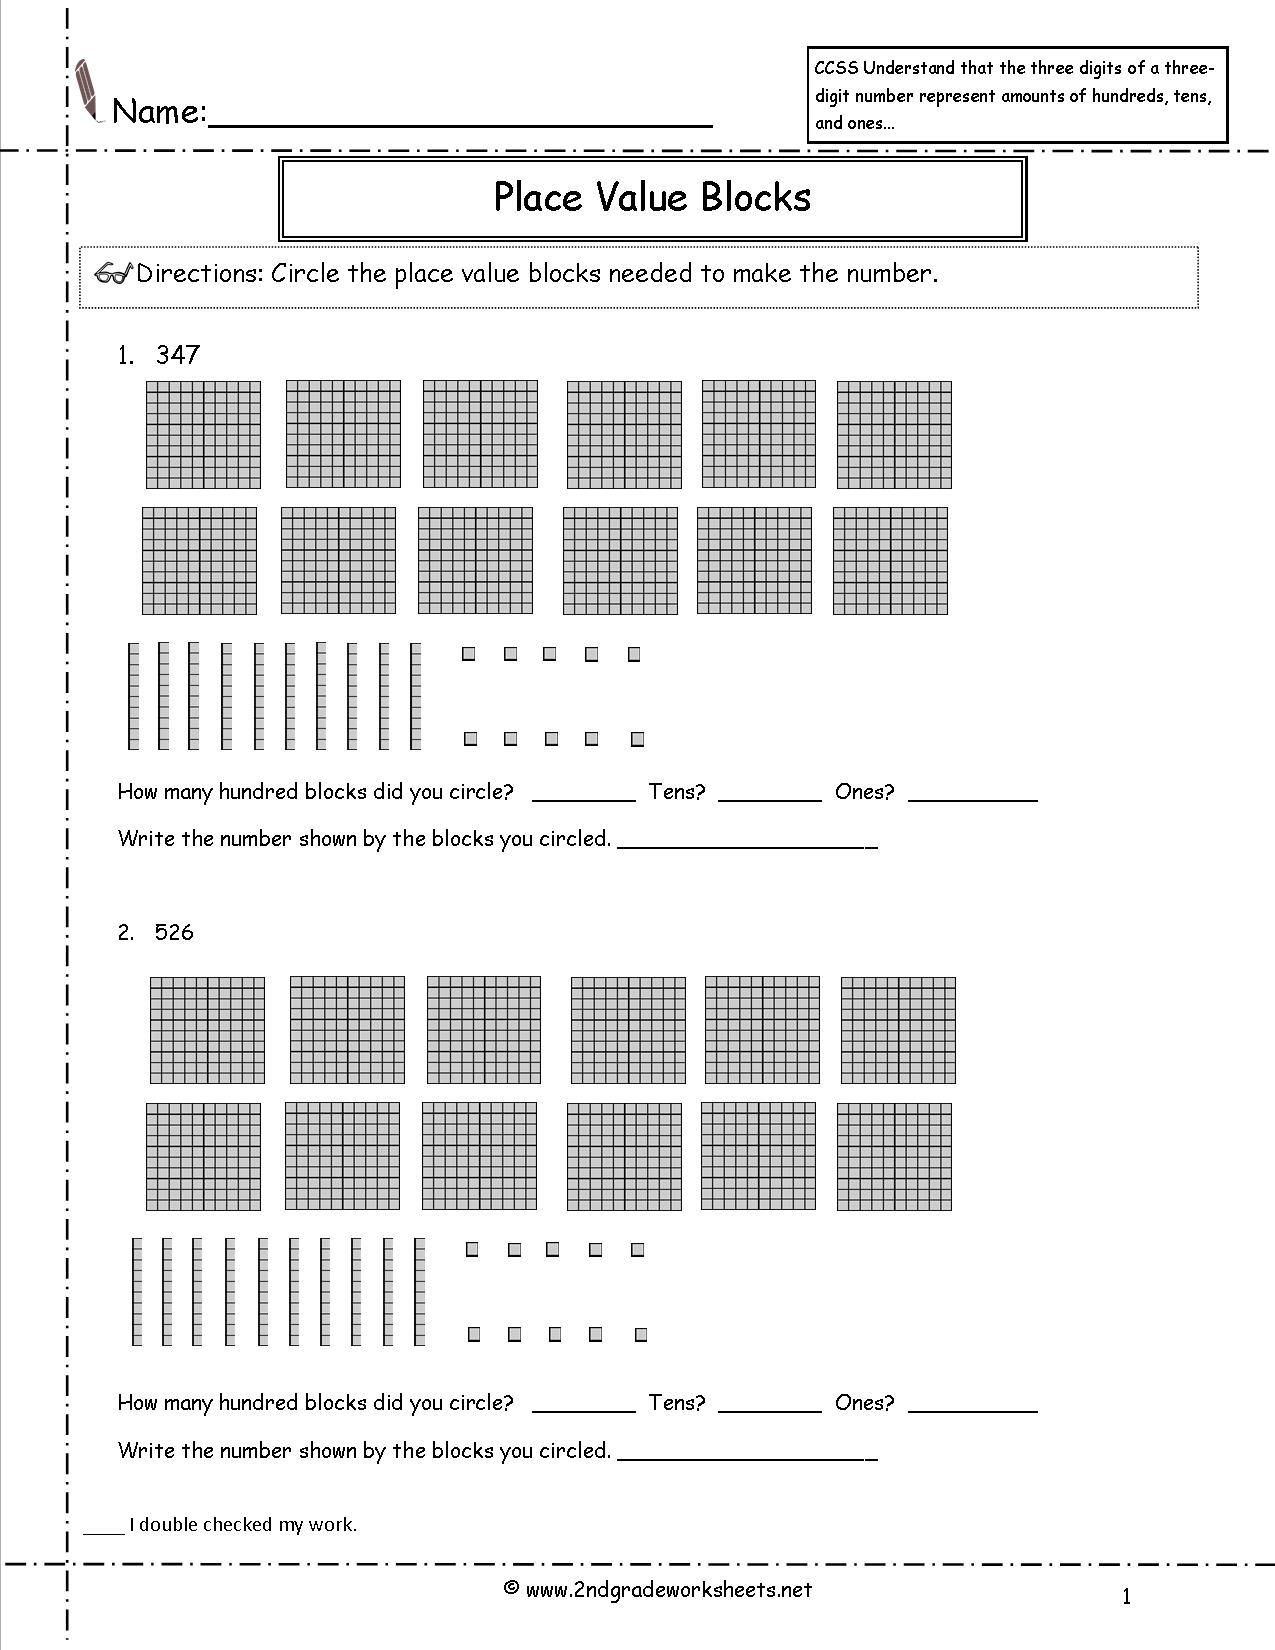 14 Best Images Of Problem Solving Worksheets For 2nd Grade